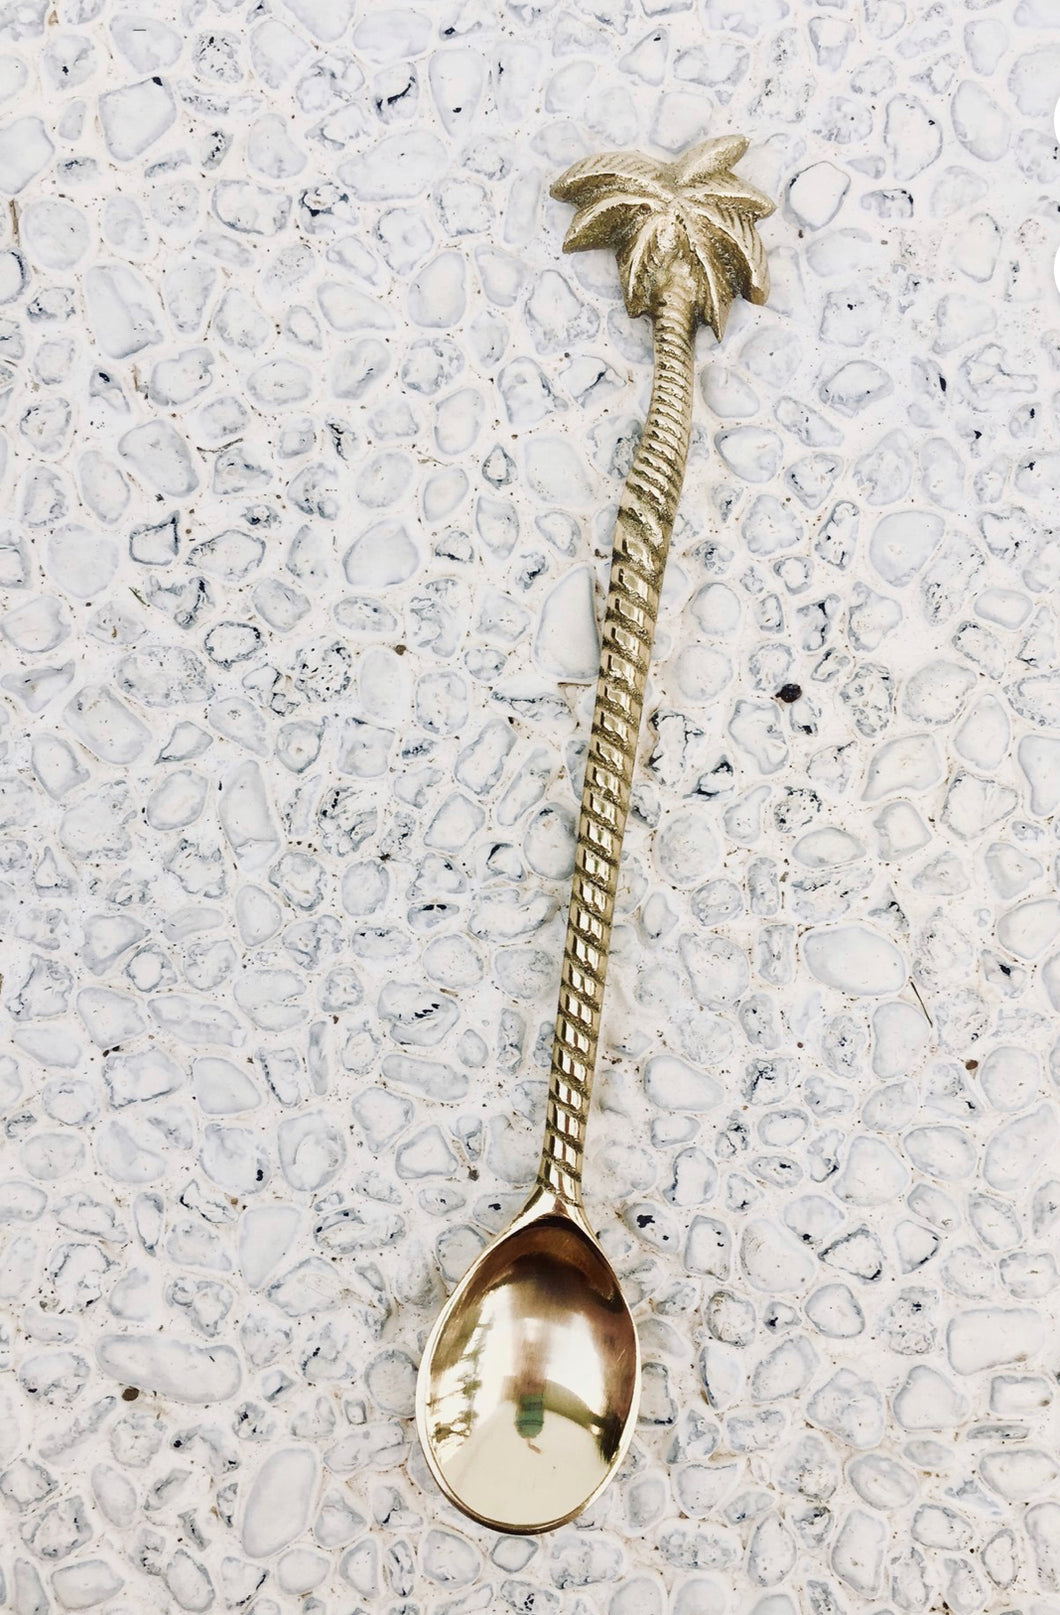 Palm swirler spoon